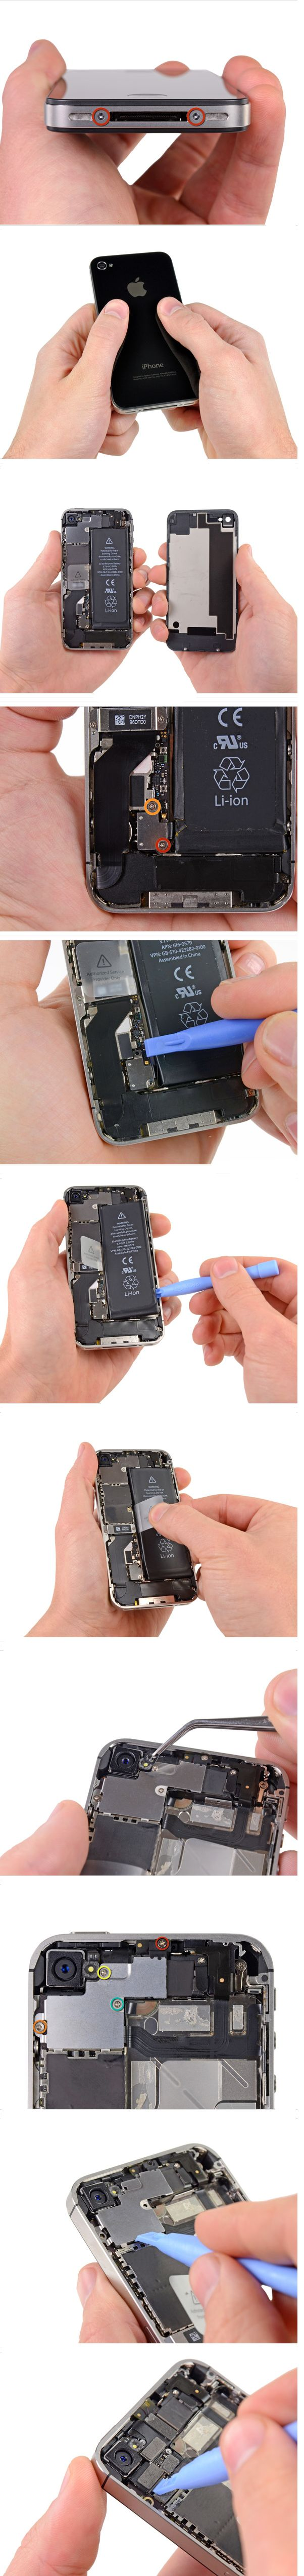 iPhone 4S Rear Camera Replacement - contacttelephonenumbers.com